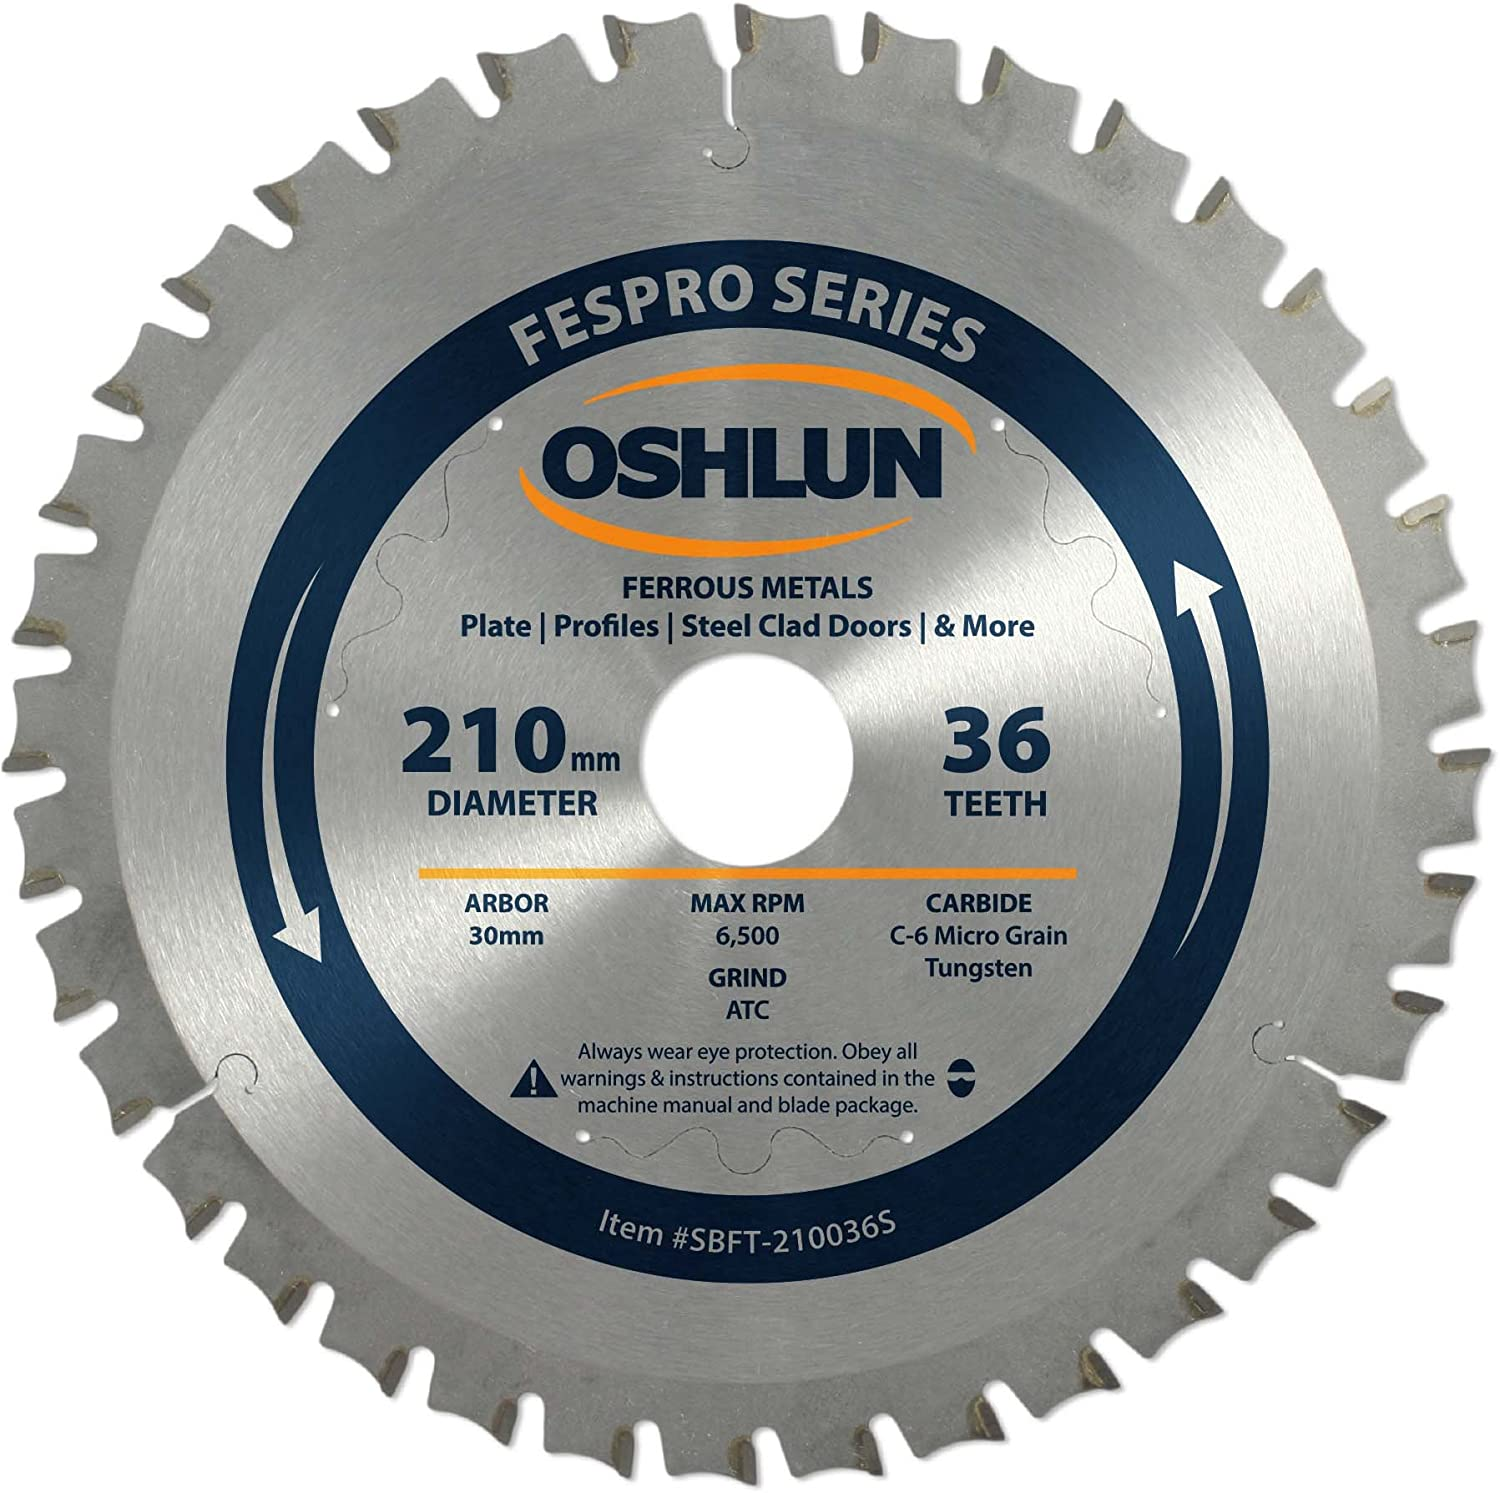 Oshlun SBFT-210036 210mm 36 Tooth General Purpose Blade Fespro